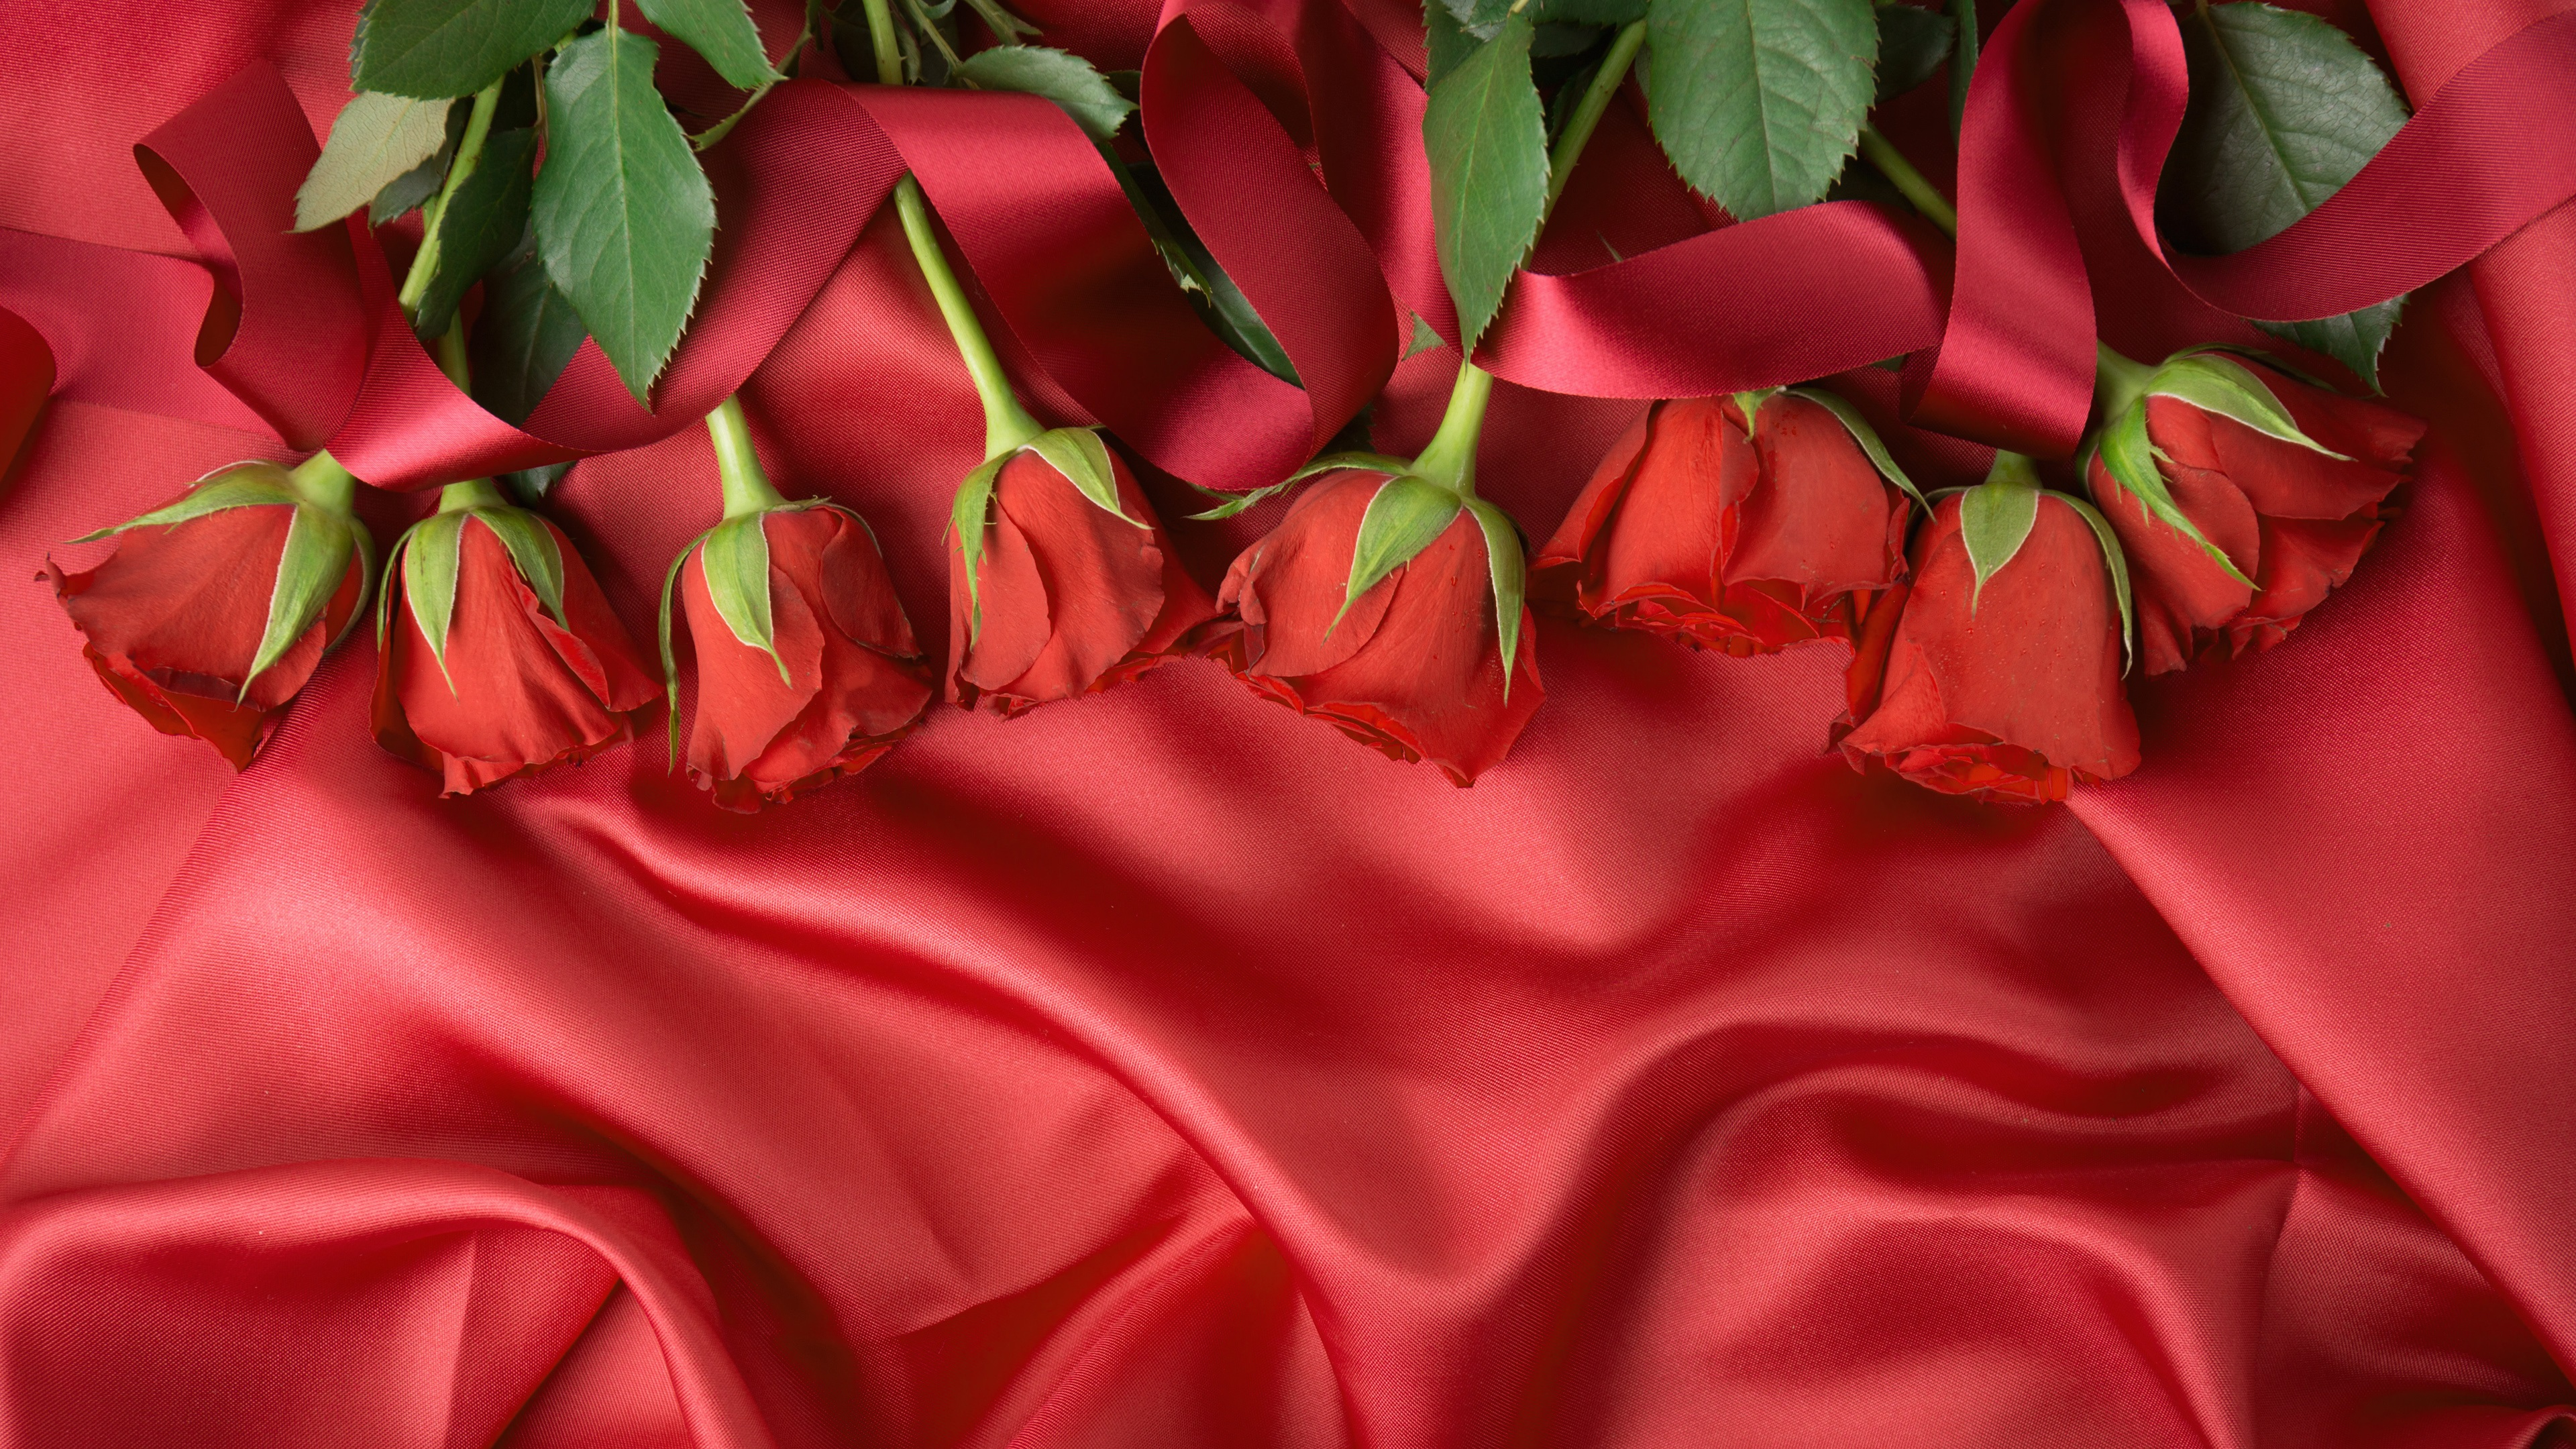 Wallpaper Red Fabric And Roses 3840x2160 UHD 4K Picture Image